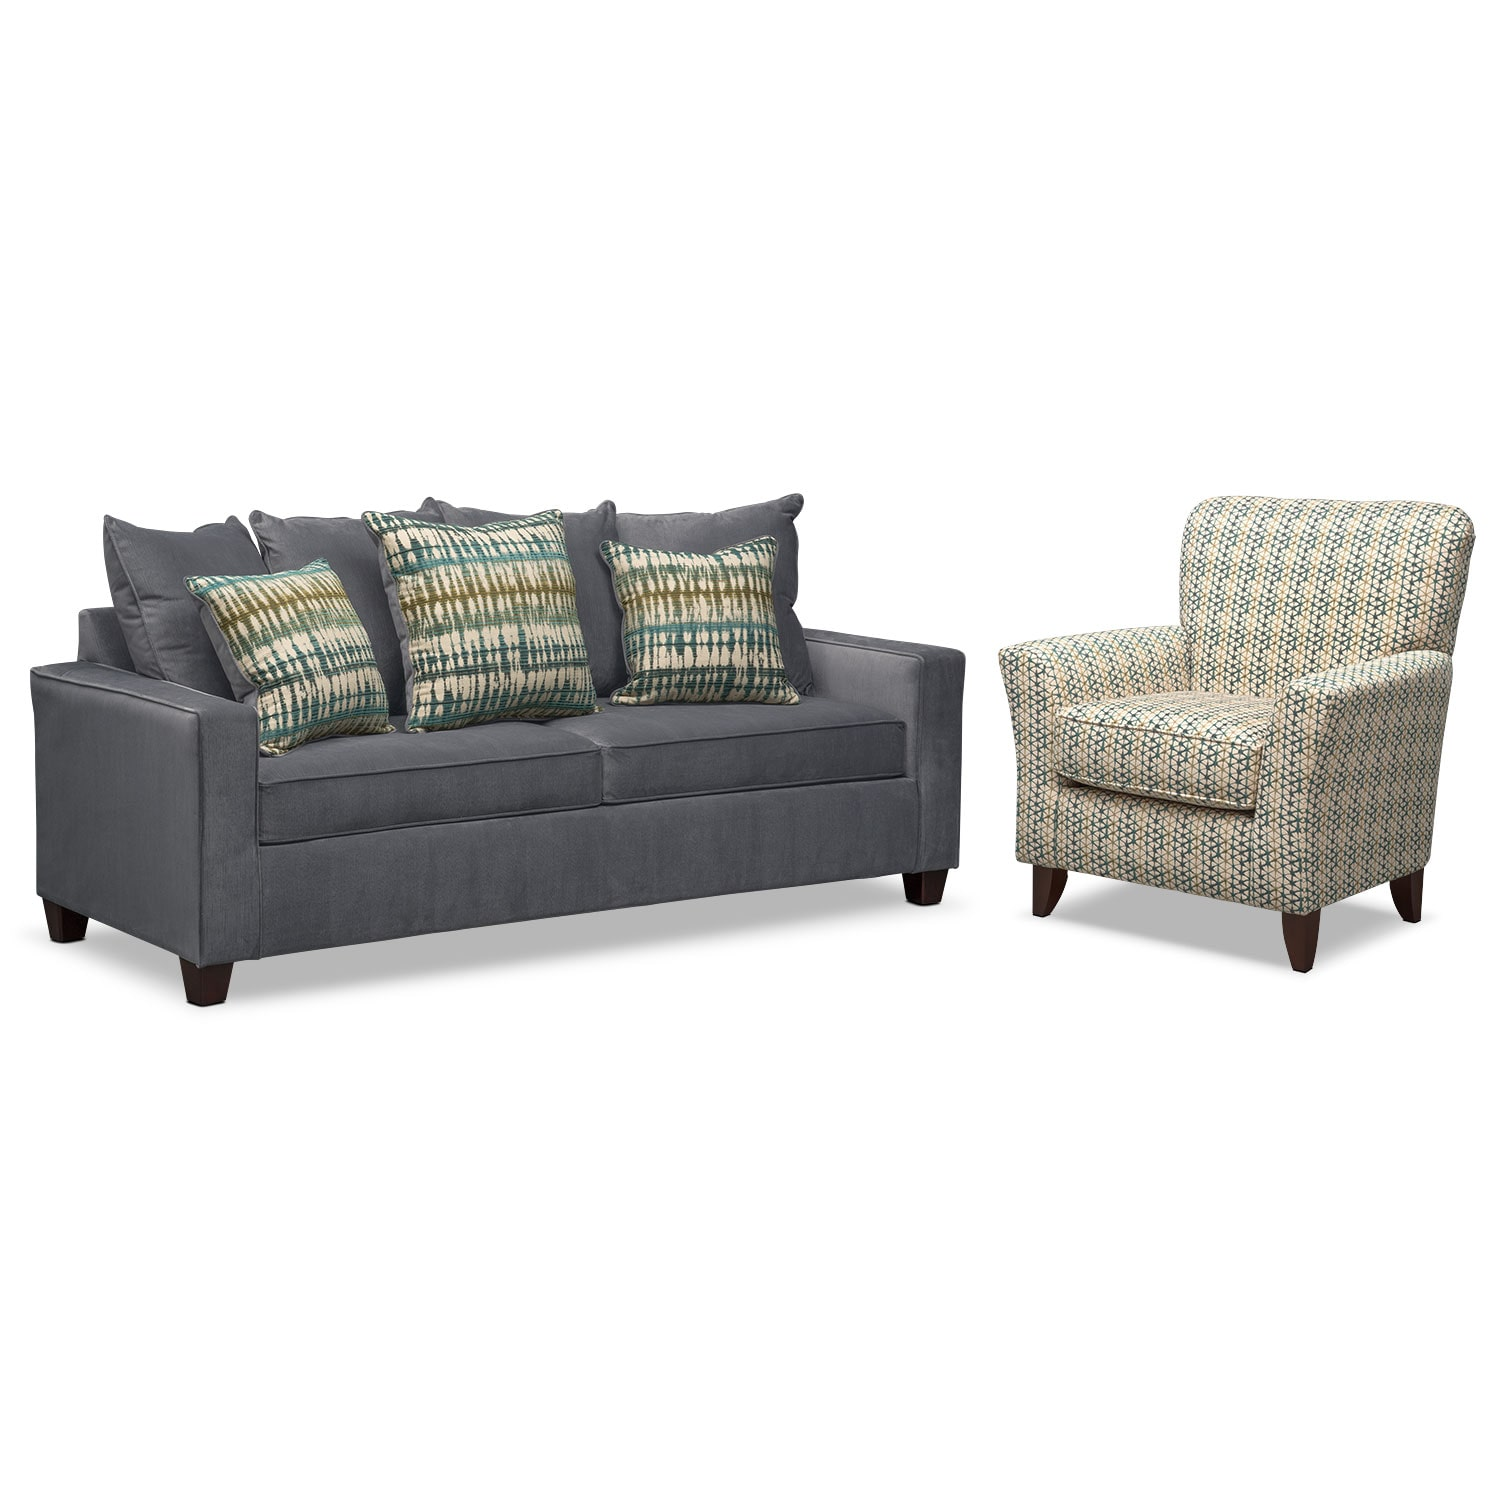 Bryden Queen Innerspring Sleeper Sofa and Accent Chair Set - Slate